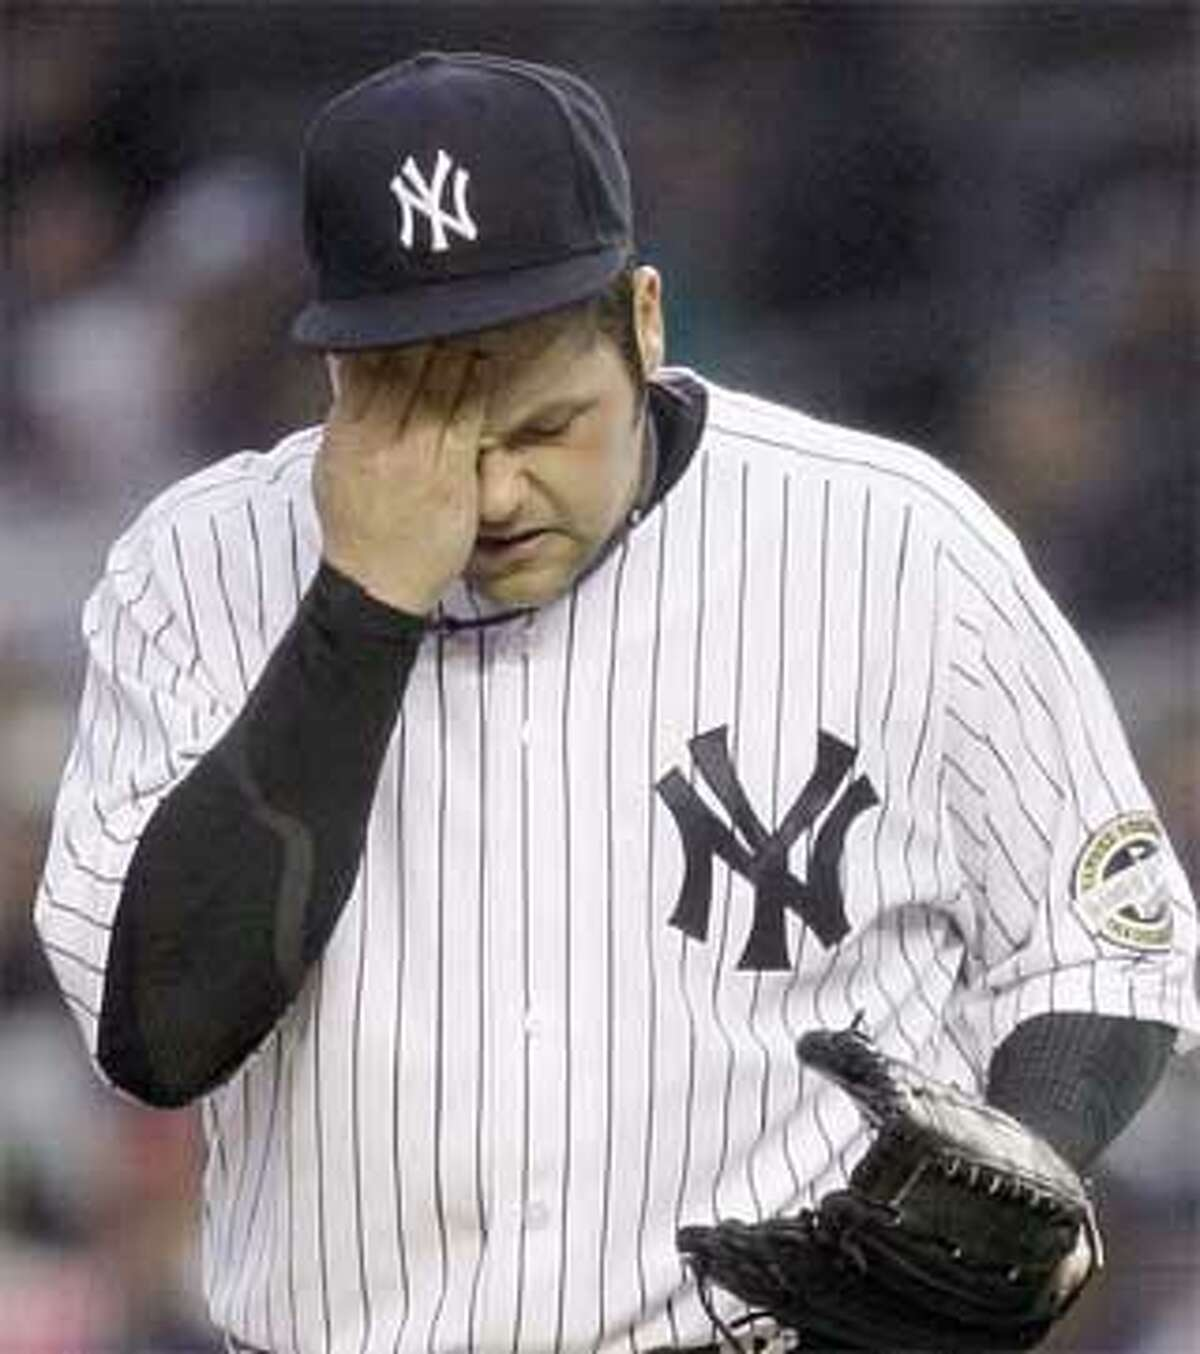 Joba Chamberlain had a rough first inning Tuesday night at Yankee Stadium but eventually settled down and struck out 12 Red Sox in his 5(TM) innings worth of work. The game was not completed in time for this edition. Check out nhregister.com to find out what happened. (Associated Press)